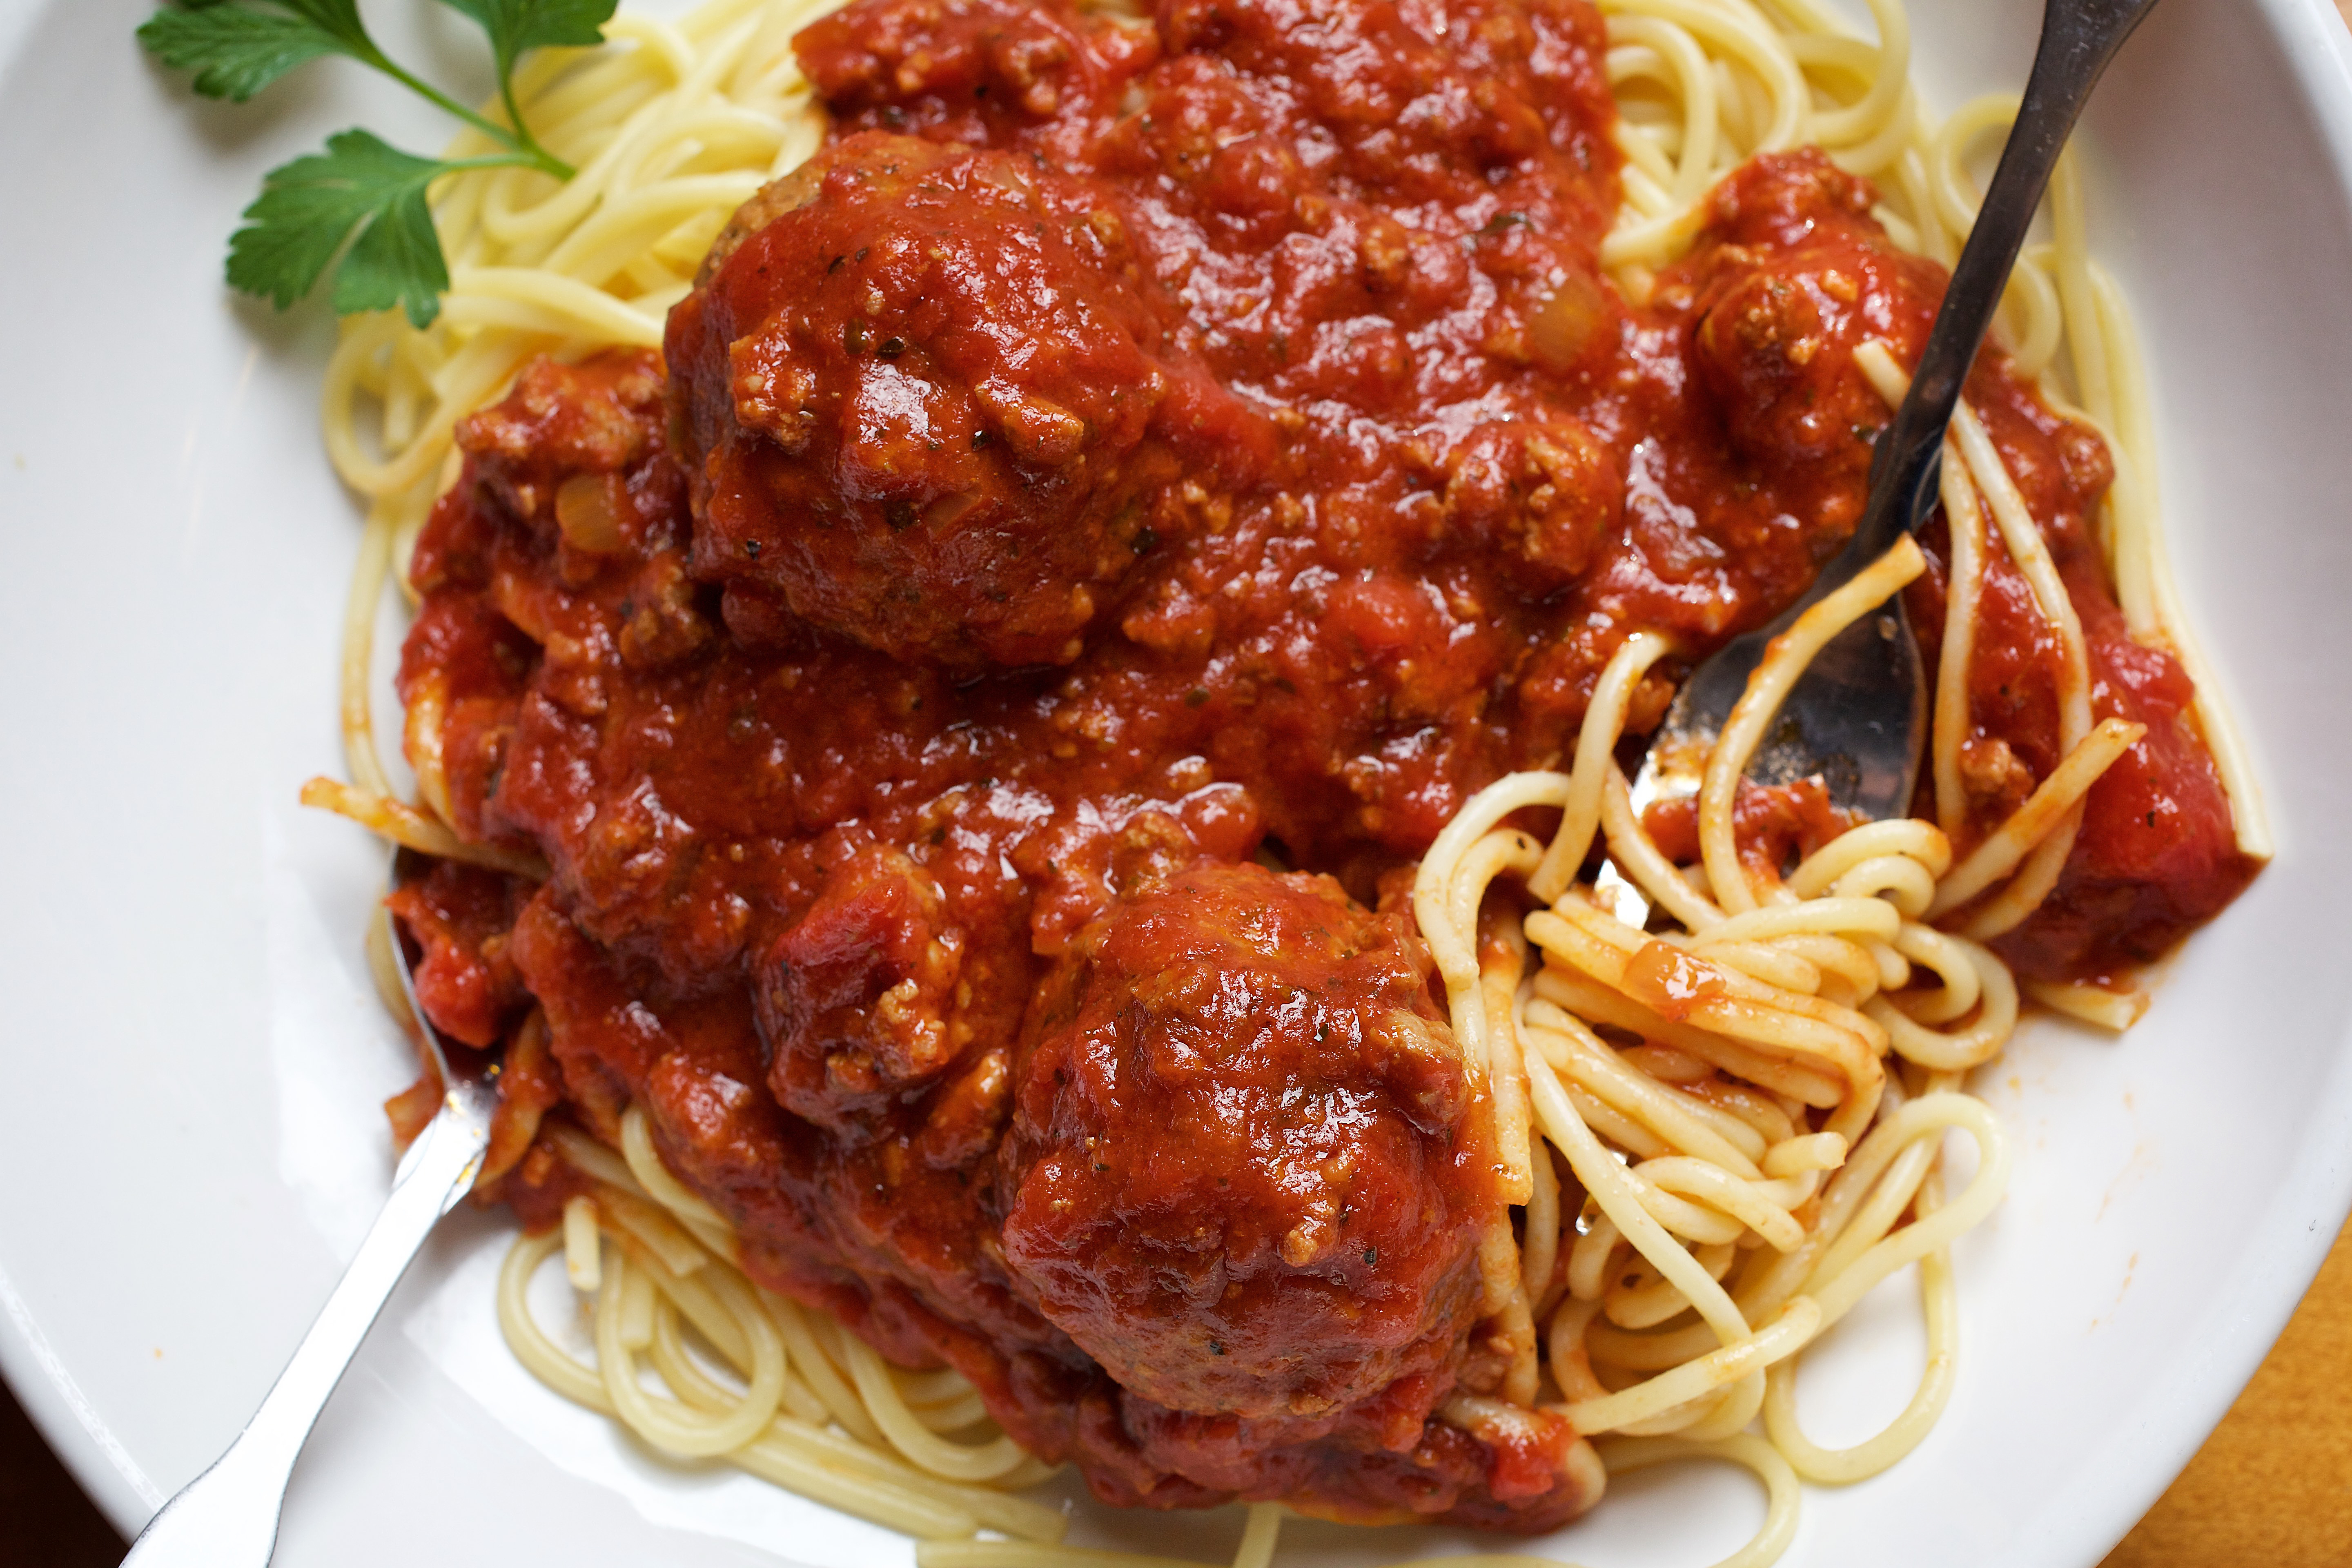 Create your own pasta--Spaghetti, Traditional Meat Sauce and Meatballs at Olive Garden photographed in Hyattsville, MD.